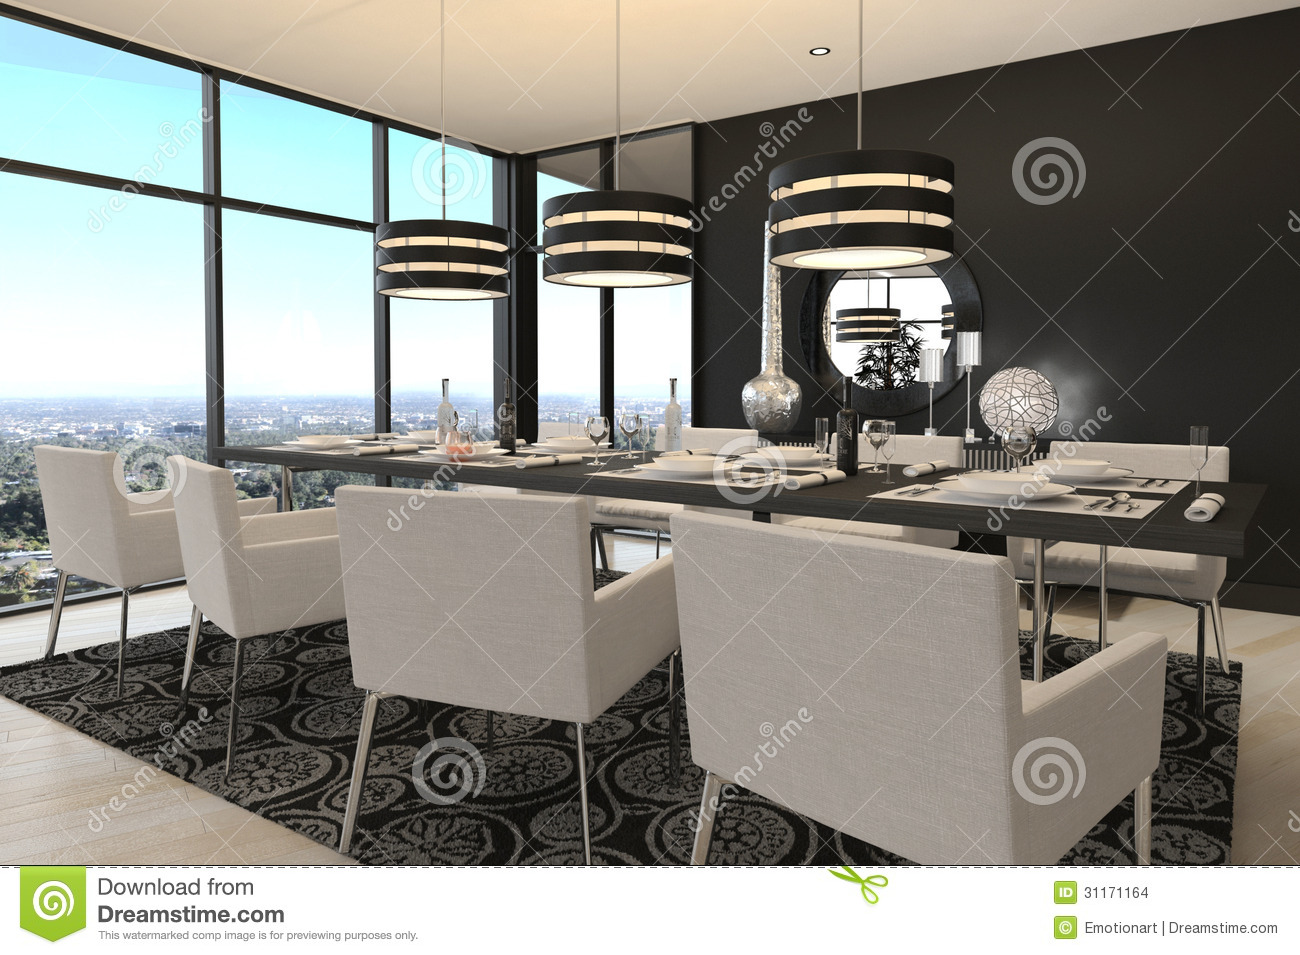 Modern design dining room living room interior stock illustration image 31171164 - Sala comedores modernos ...